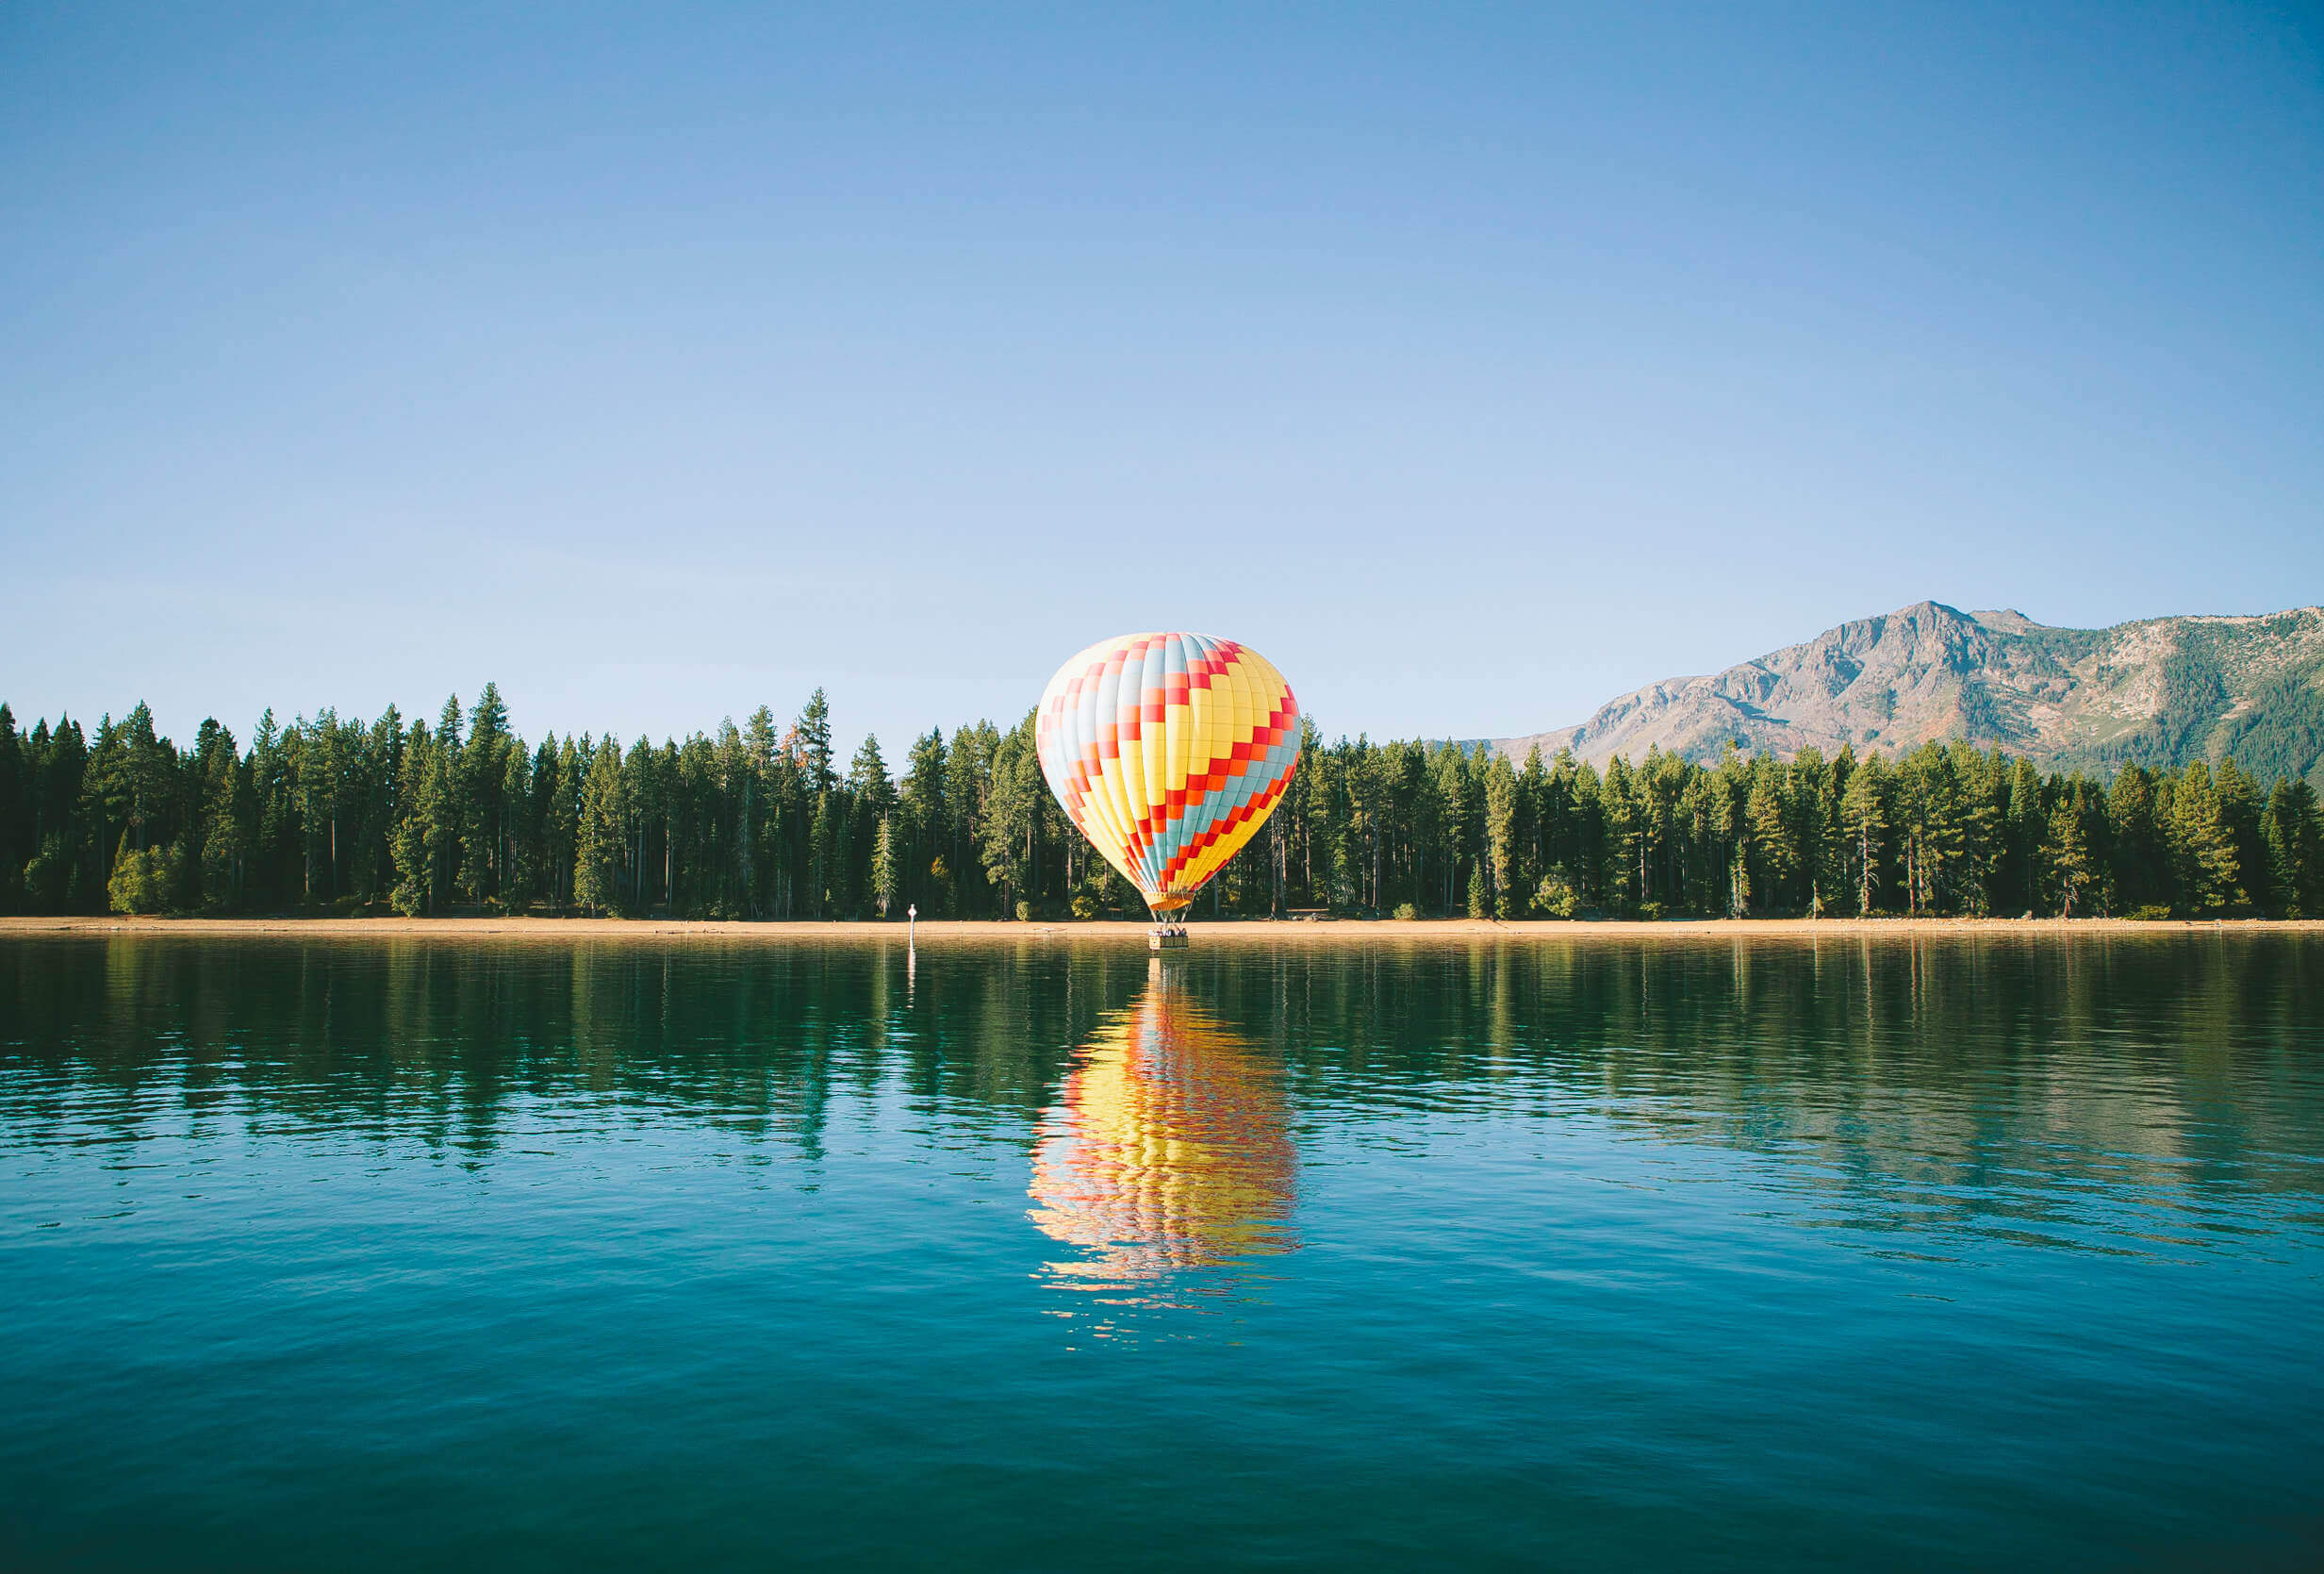 hot air balloon on water surrounded by moutains and evergreens